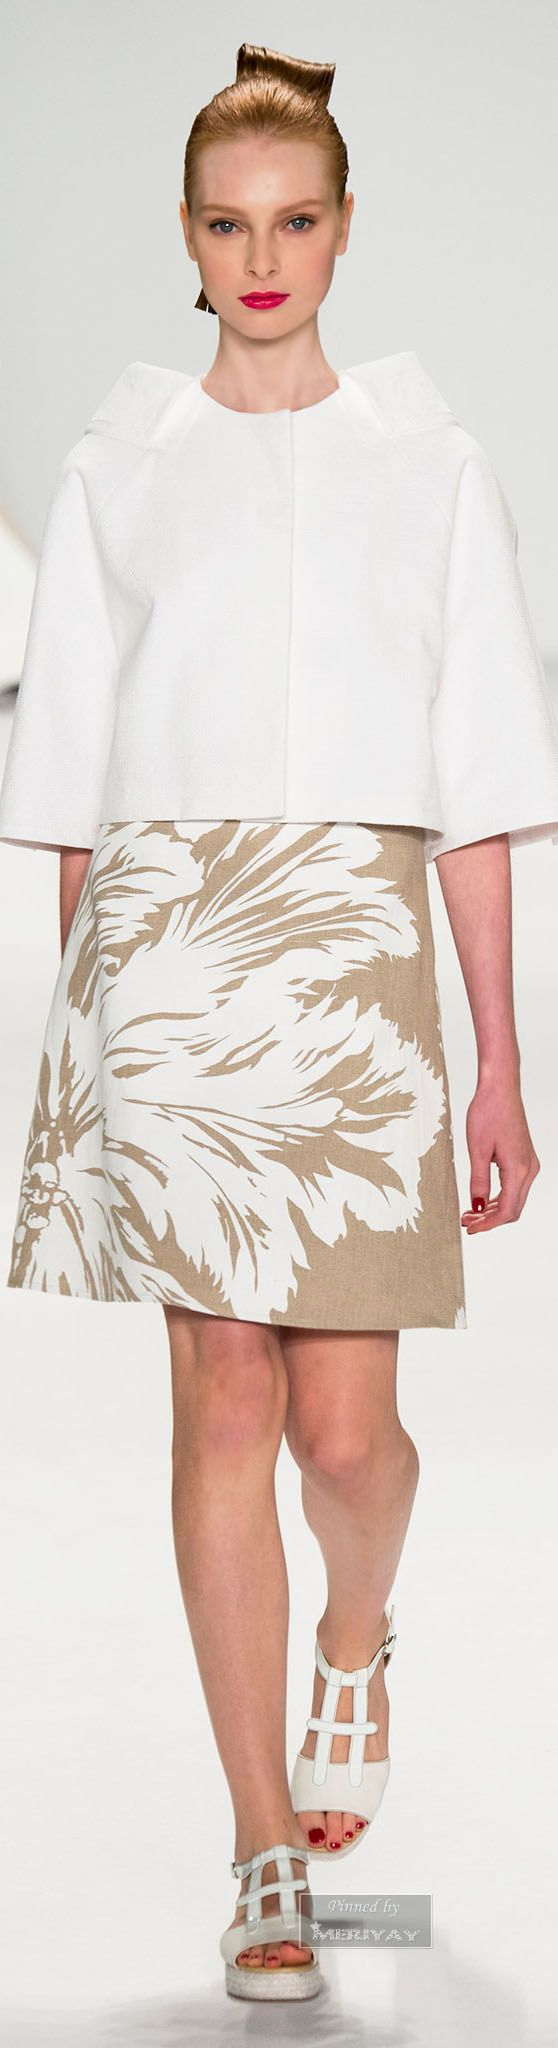 Casual flowy white dress fashion style 2015 - Spring 2015 Casual Fashion Styleclassic